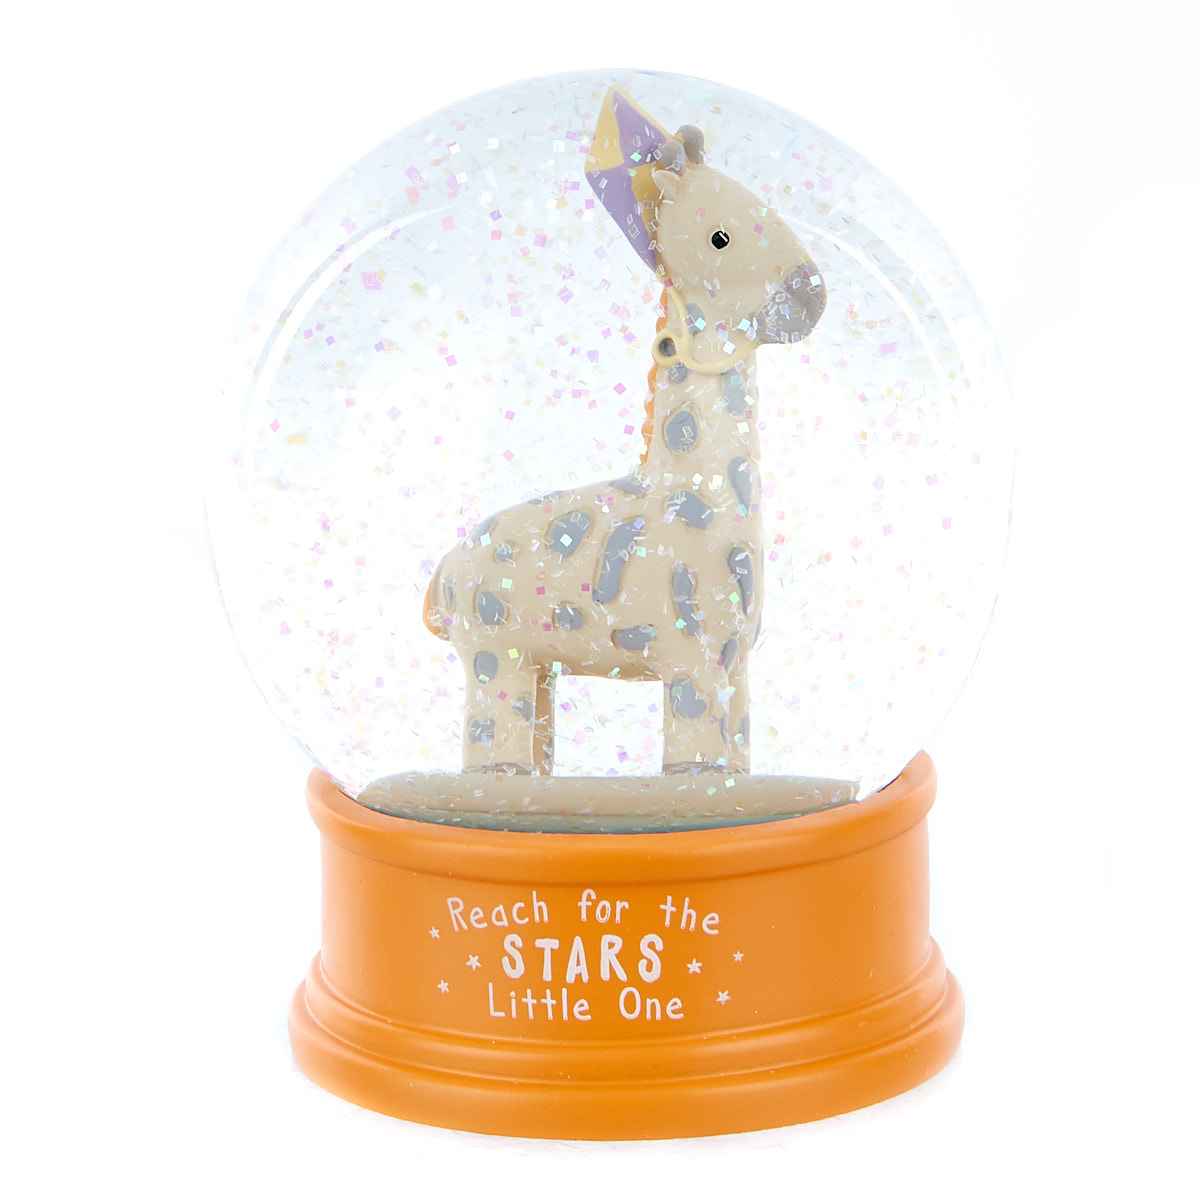 Teeny Wonders Baby Giraffe Water Dome